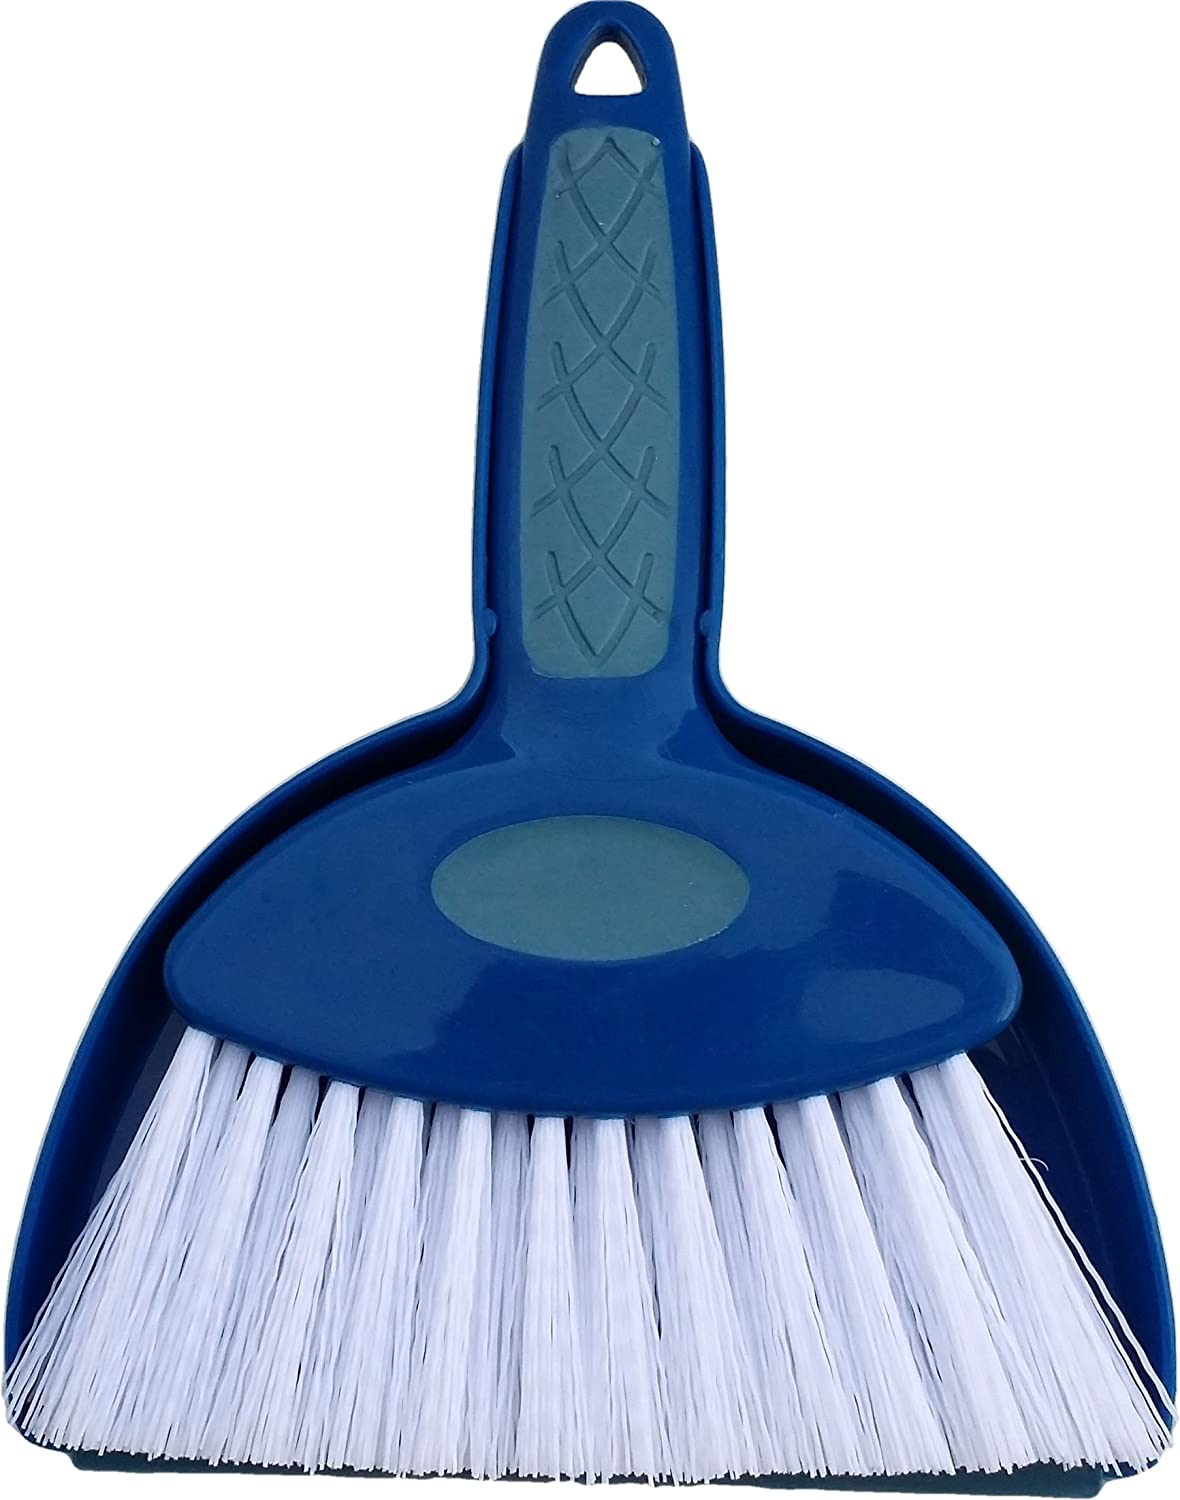 Hefty and Durable Small Hand Broom with Snap-on Dust Pan, Available in Various Package Quantities (1) Ennvo Inc. H&PC-86231